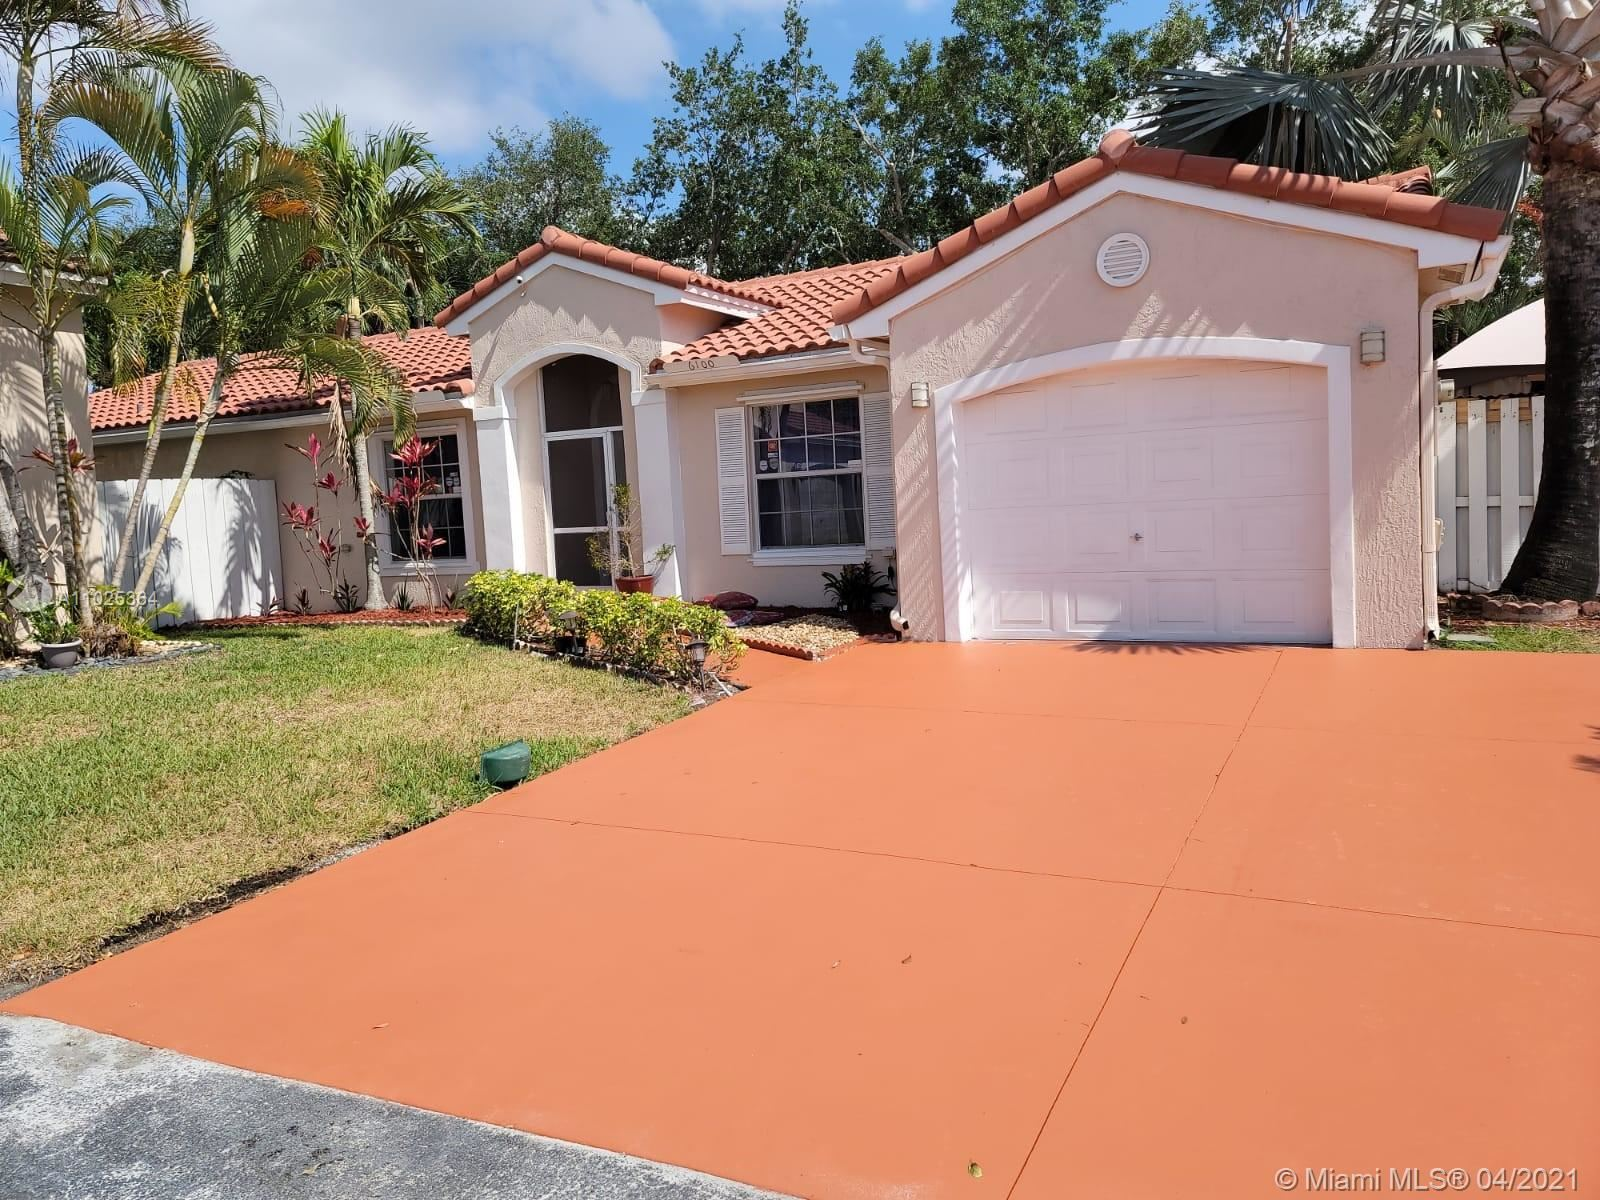 6100 NW 43rd Ave, Coconut Creek, FL 33073 - #: A11025364